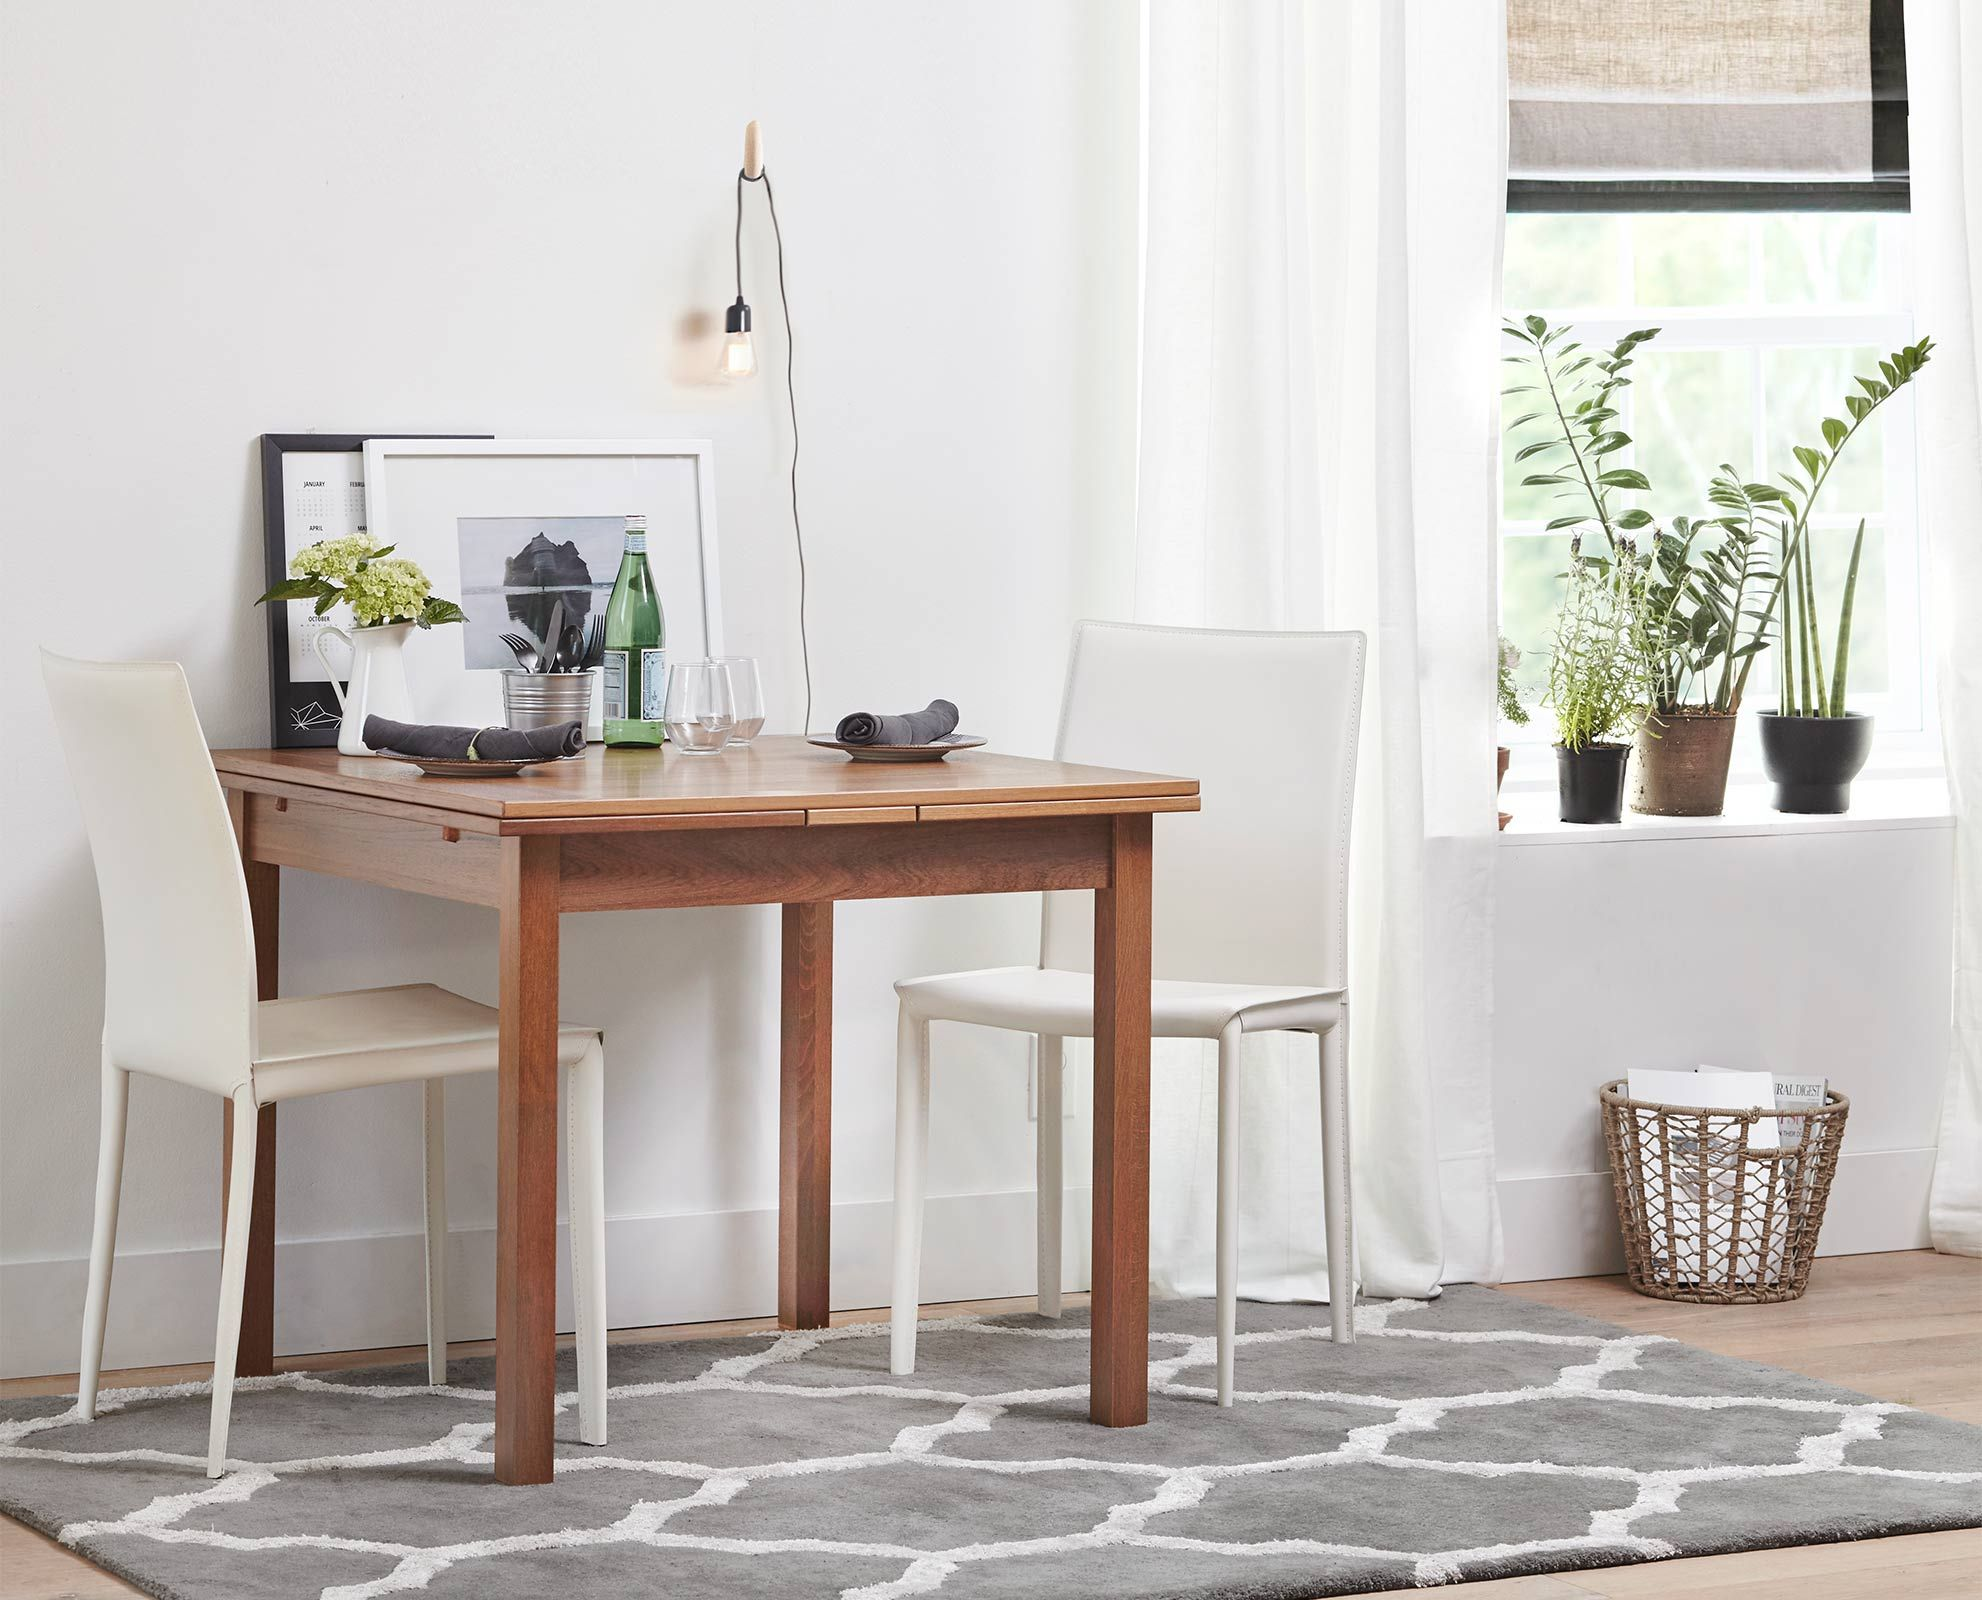 Dania The Dinex Beta Dining Table Is A Simple Solution For Your